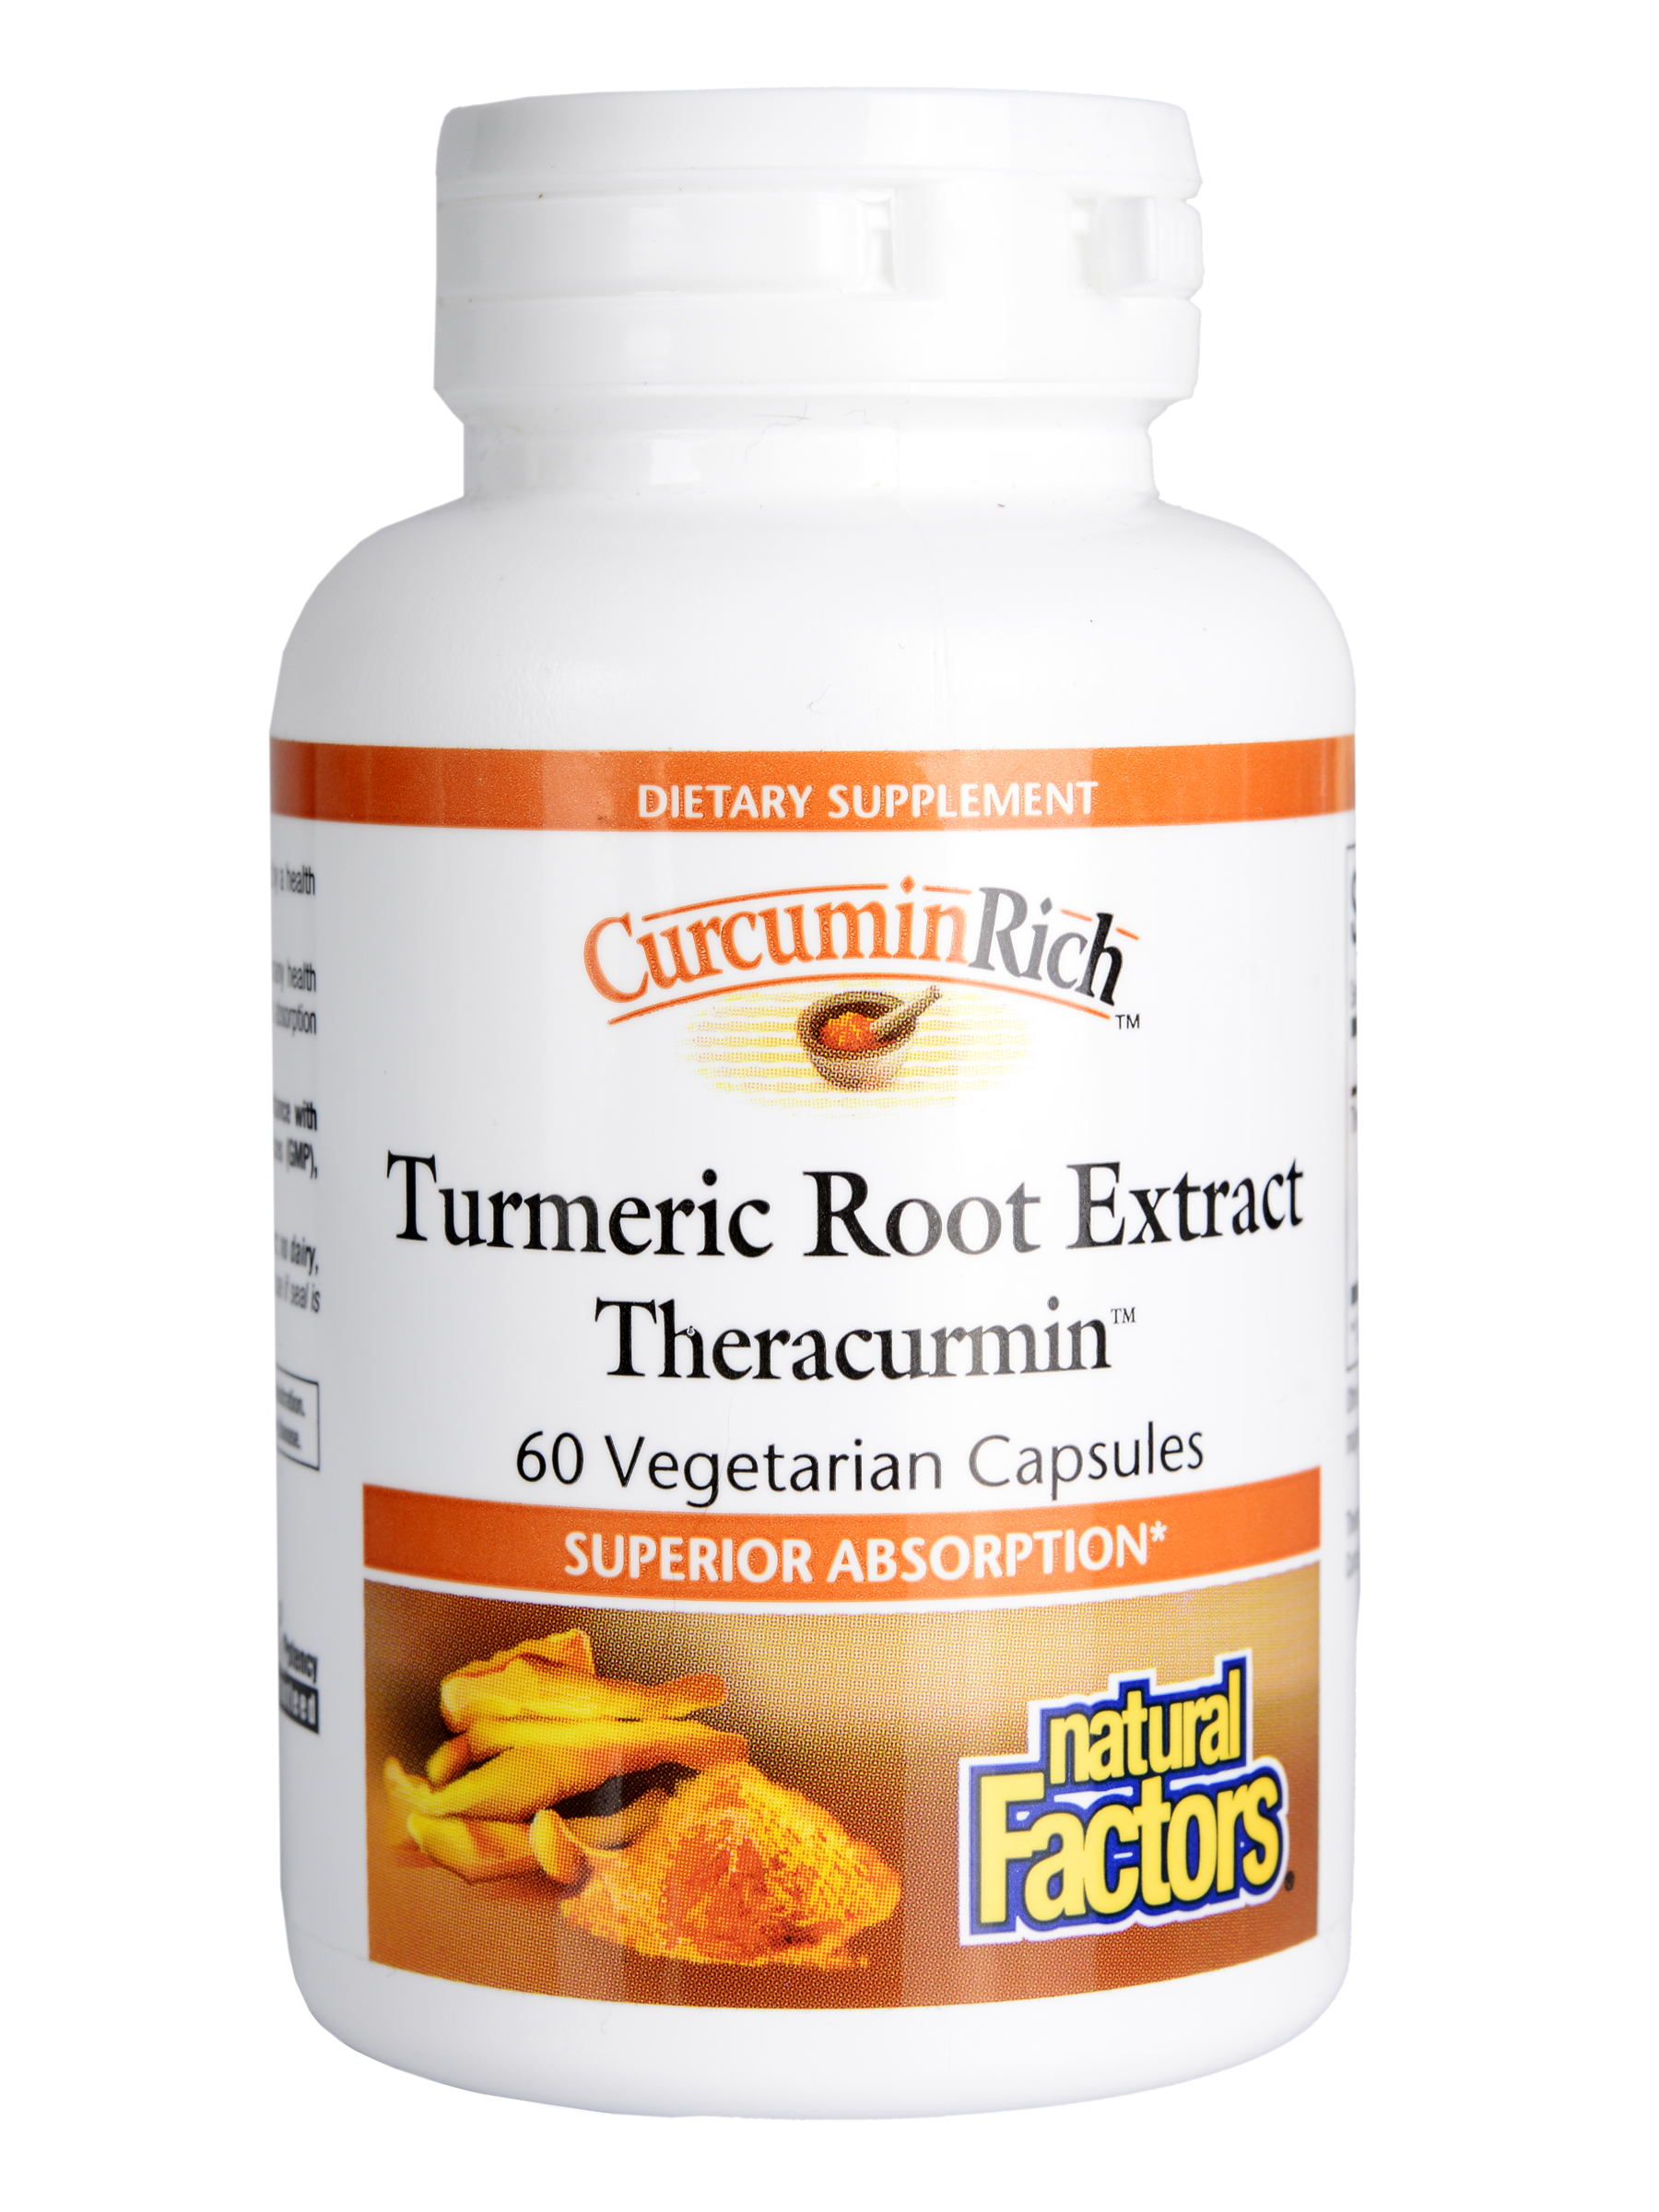 Natural Factors CurcuminRich Turmeric Root Extract with Theracurmin